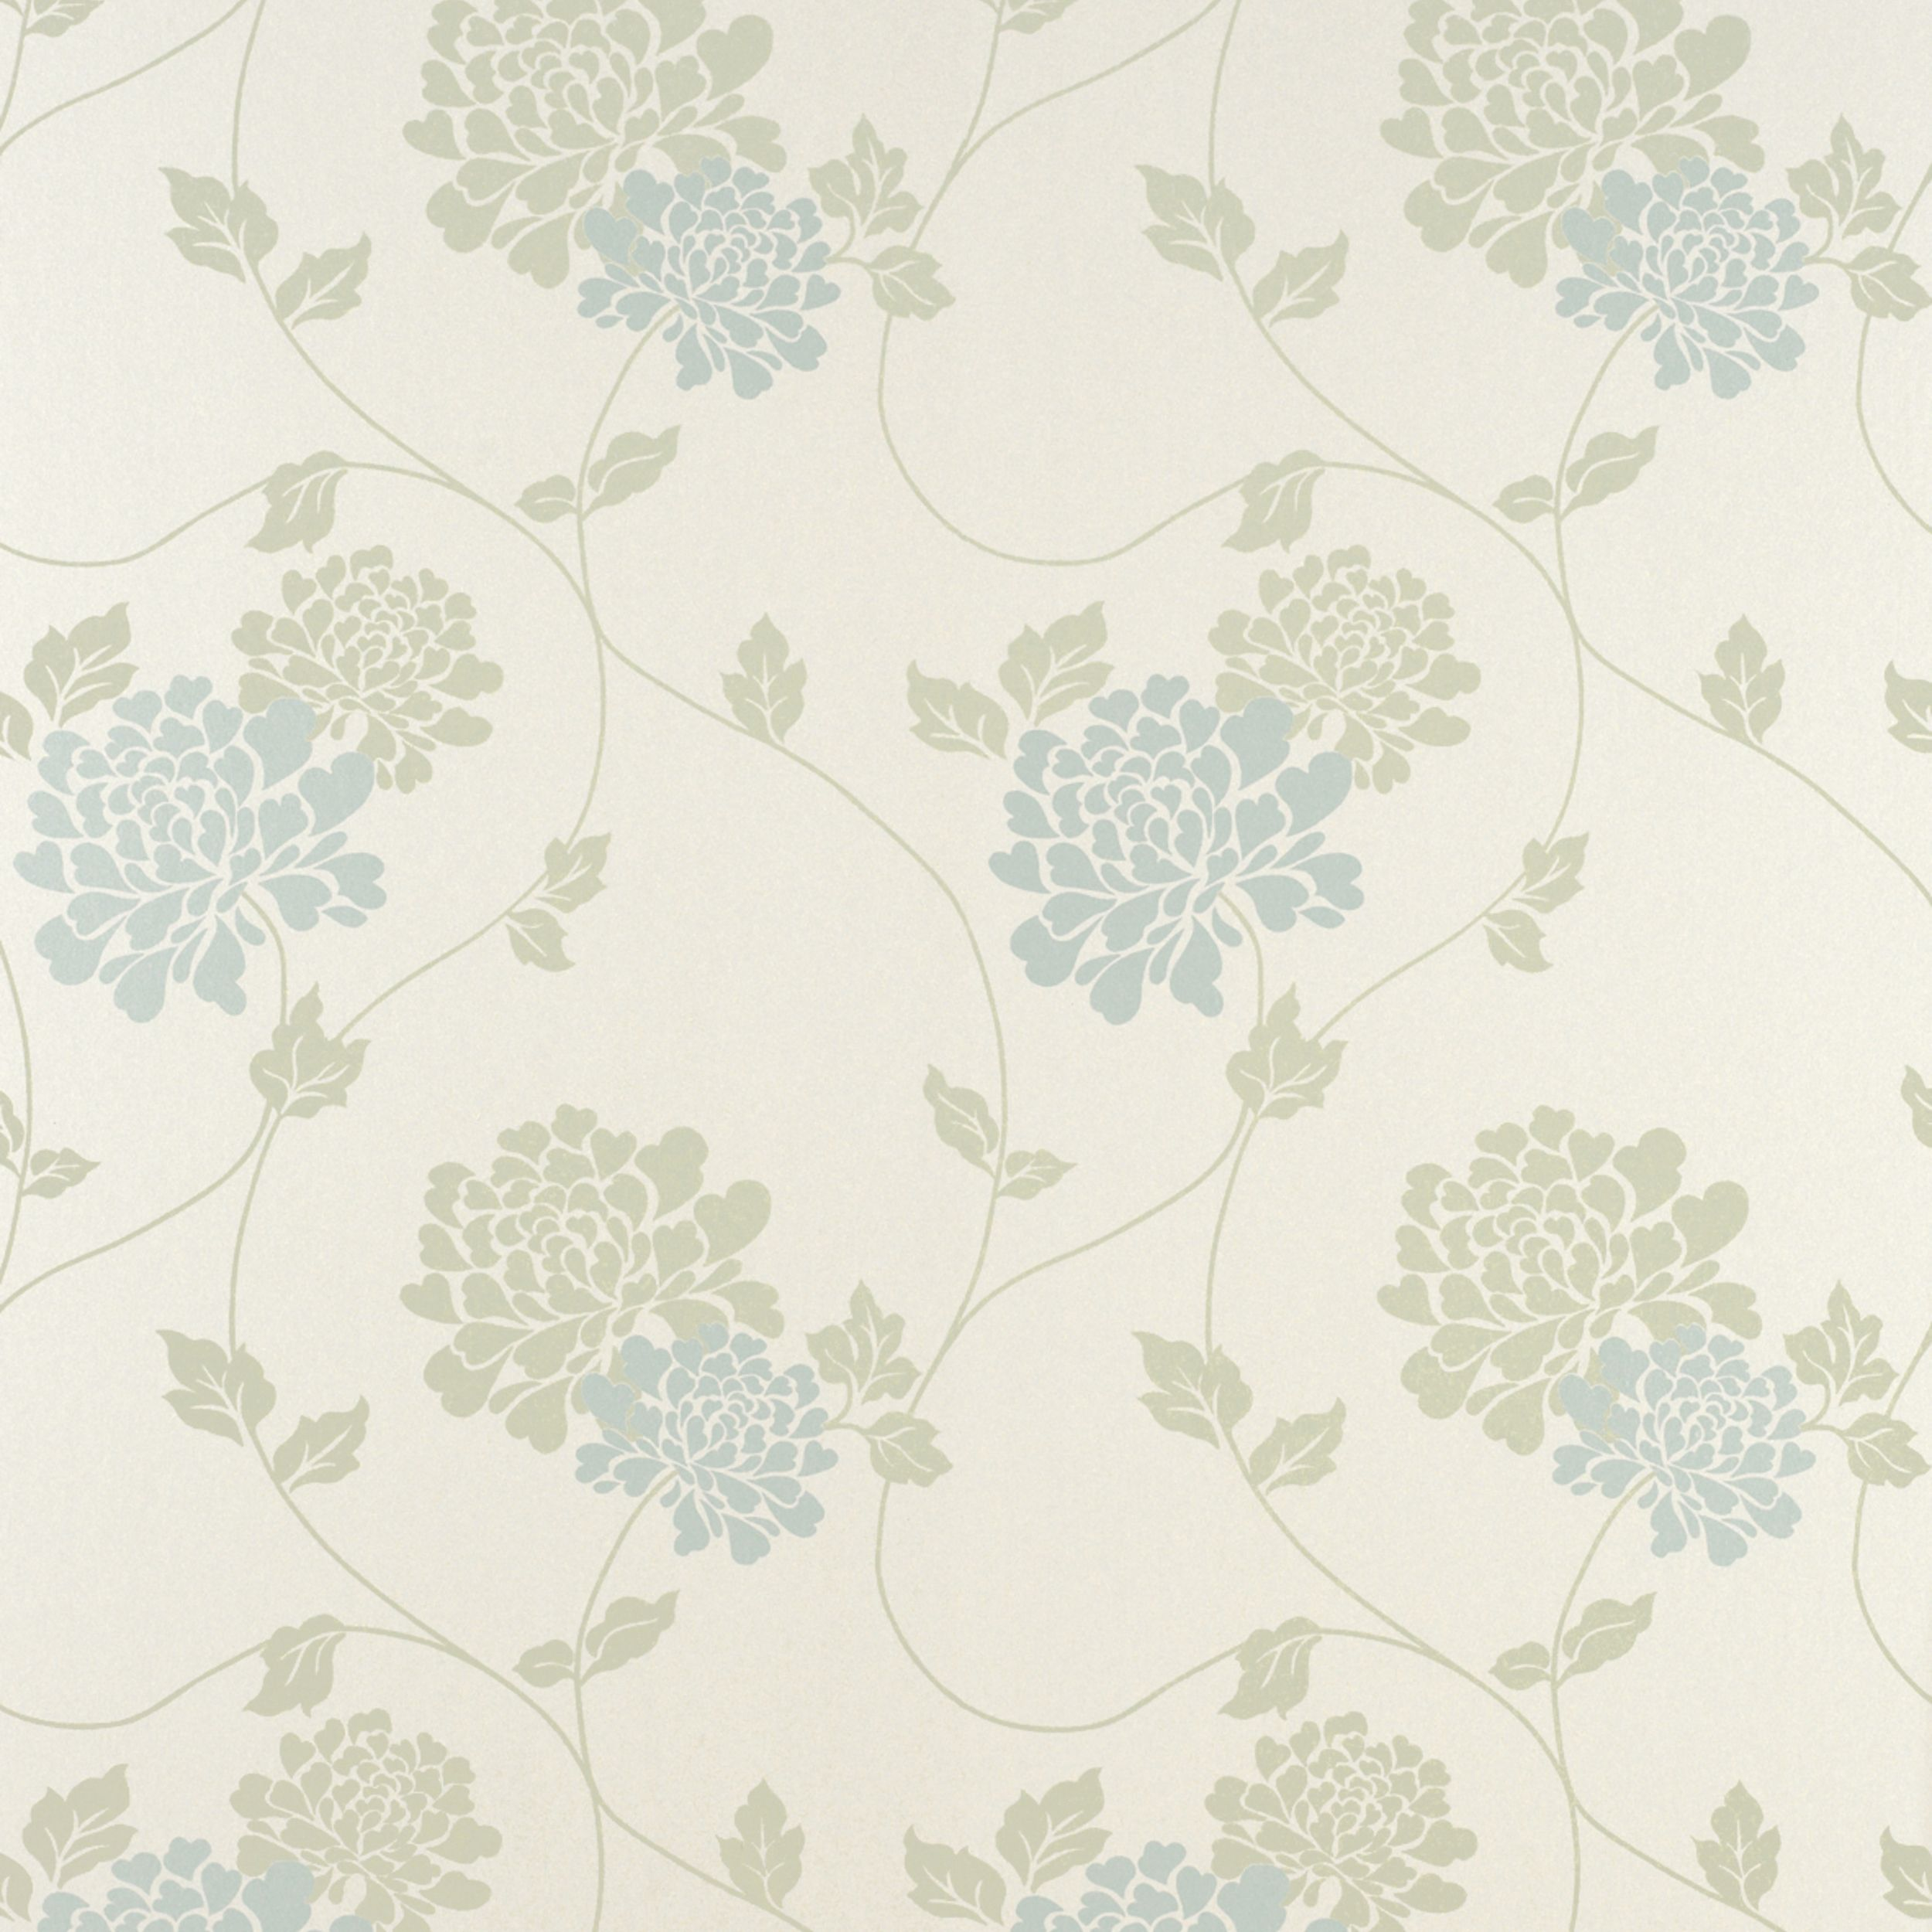 Isodore Pale Forest Floral Wallpaper Blue Floral Wallpaper